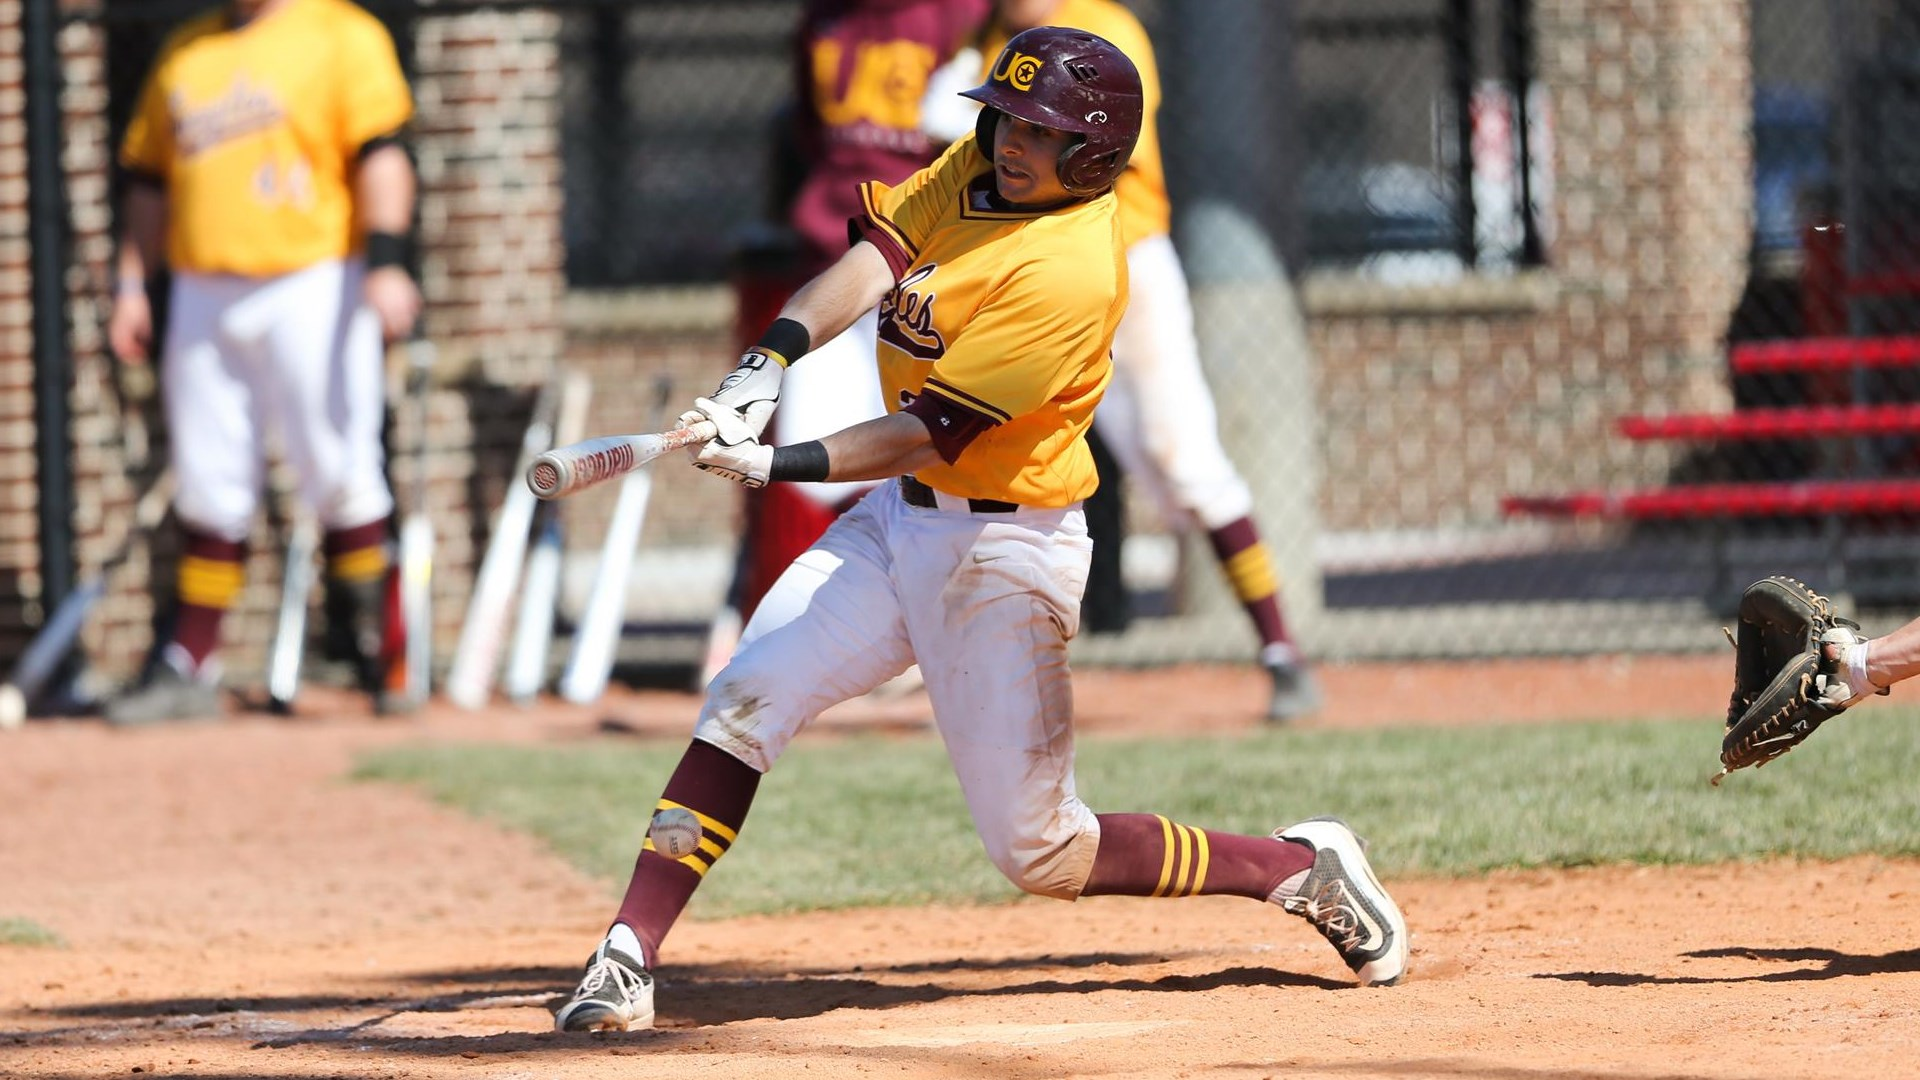 Toronto Mets alum Gianfranco Morello (Toronto, Ont.) finished his final season of college baseball leading the University of Charleston with a .362 average. He also had a .460 on-base percentage and was 16-for-18 in stolen base attempts. Photo: University of Charleston Athletics